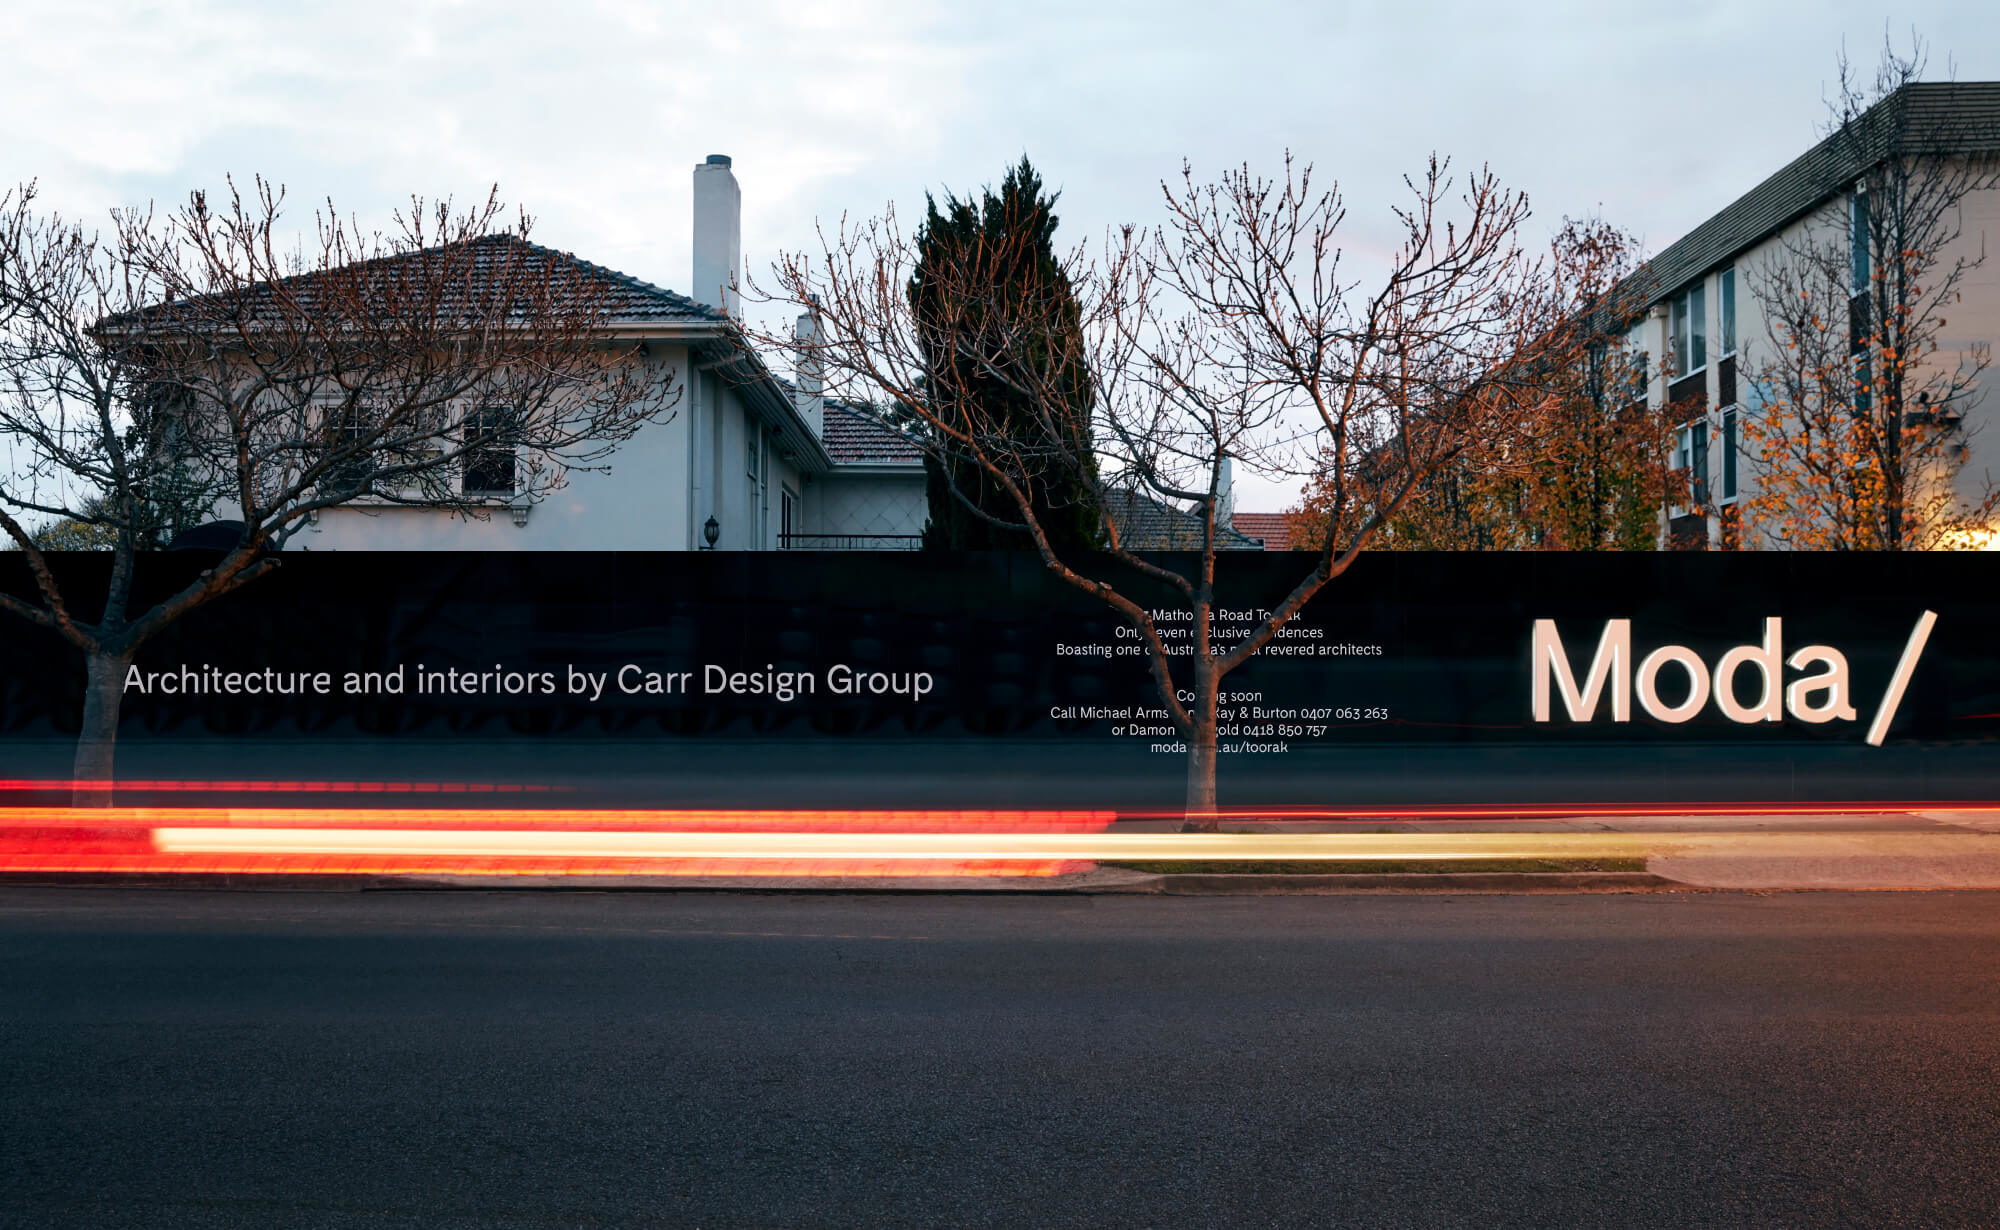 Moda_97_Mathoura_Road_Toorak_Artistry_Hoarding_Assembly_Branding-41